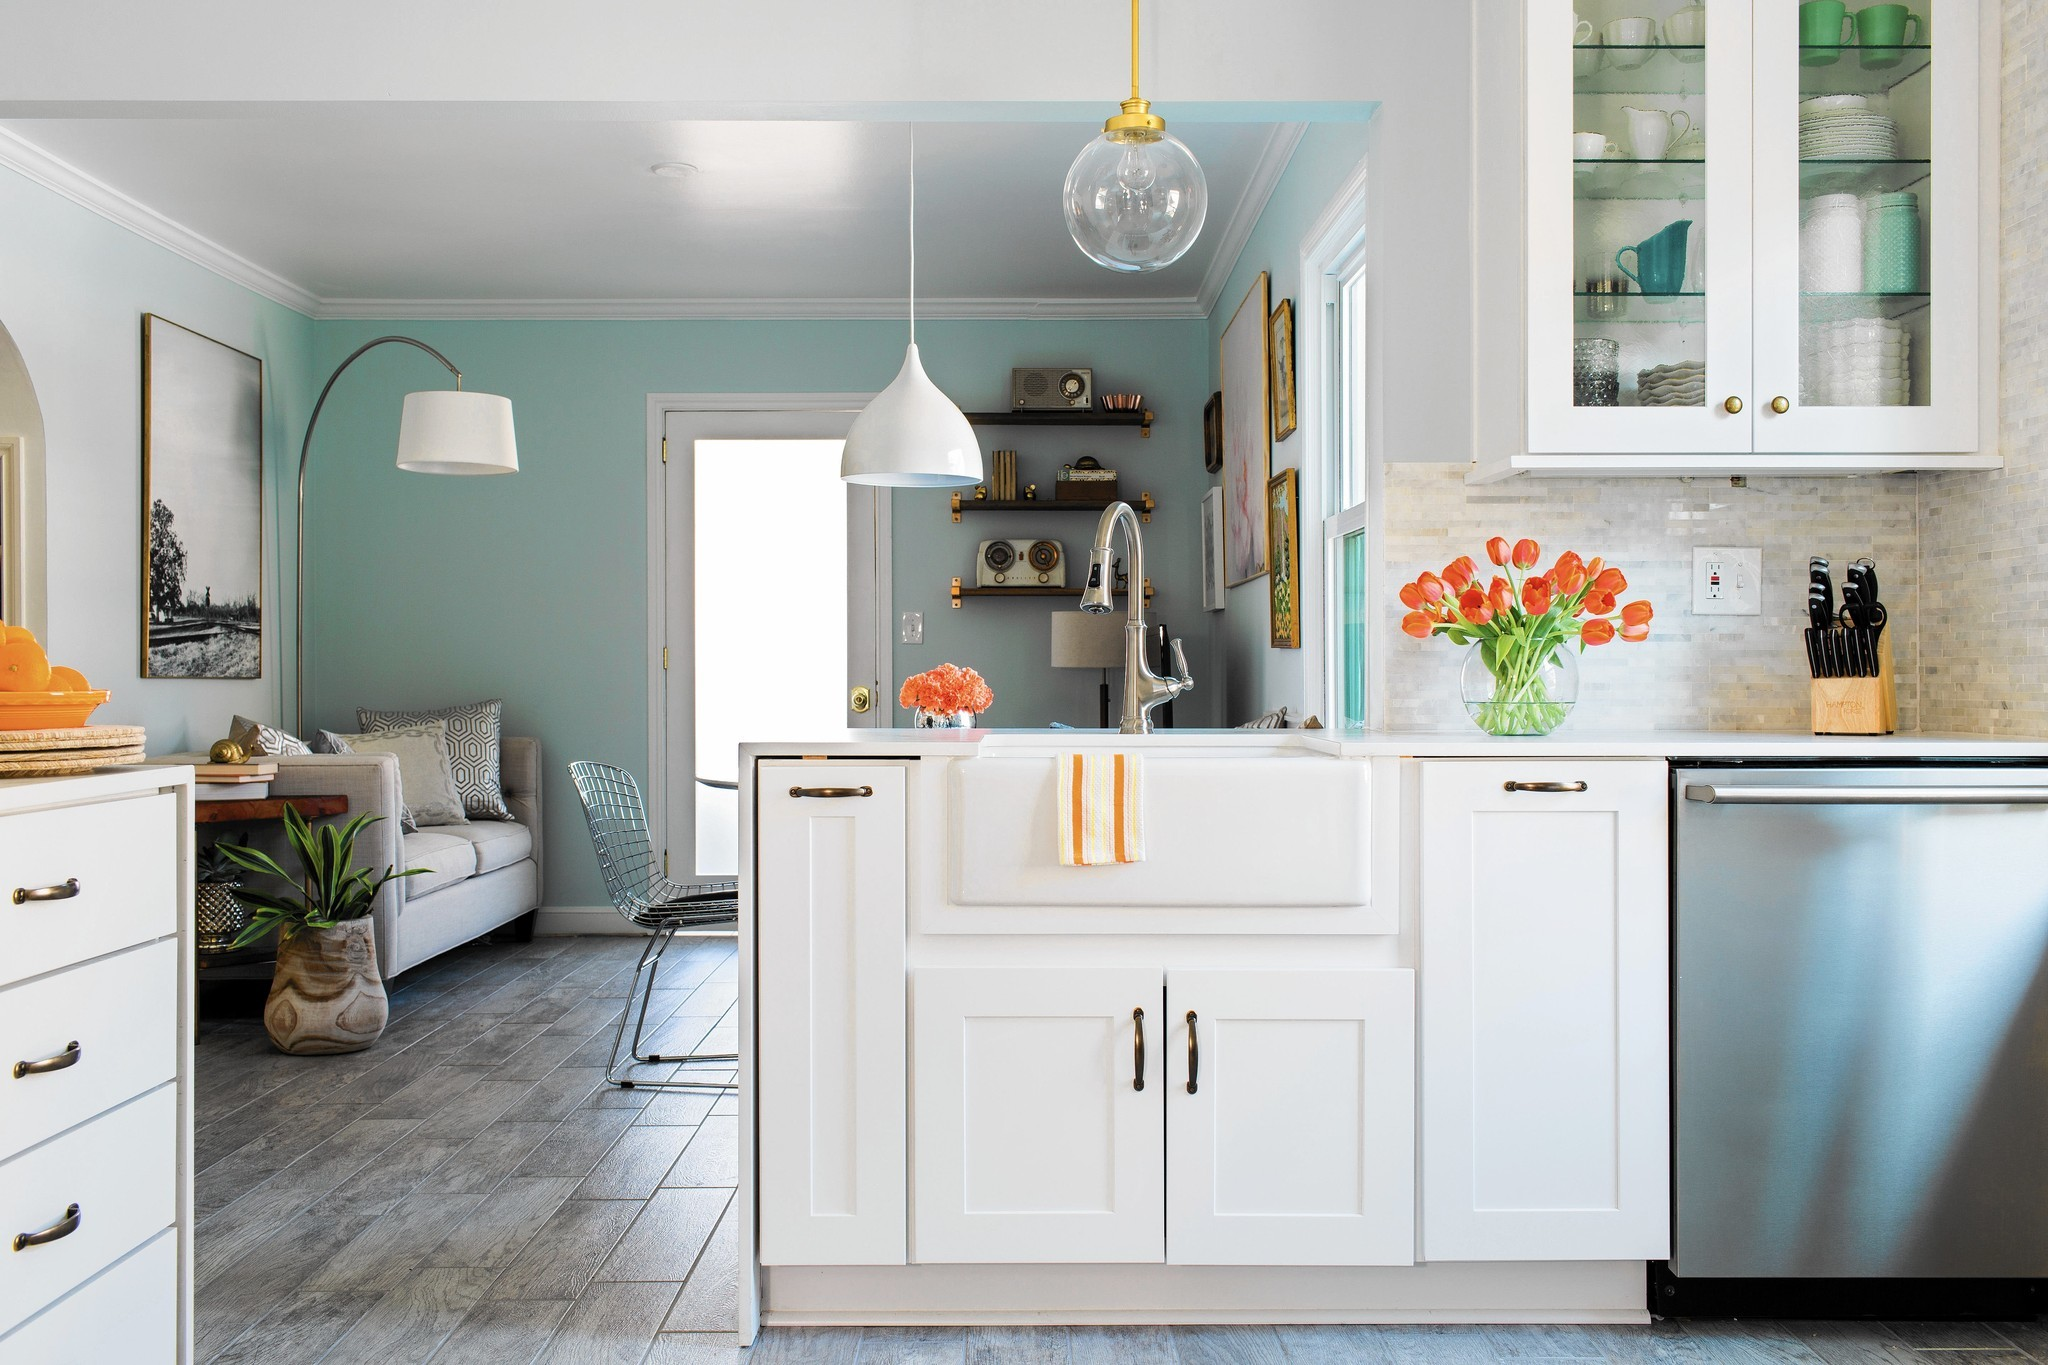 Replace, Reface, Refinish: A Tale of Three Cabinets - Orlando Sentinel